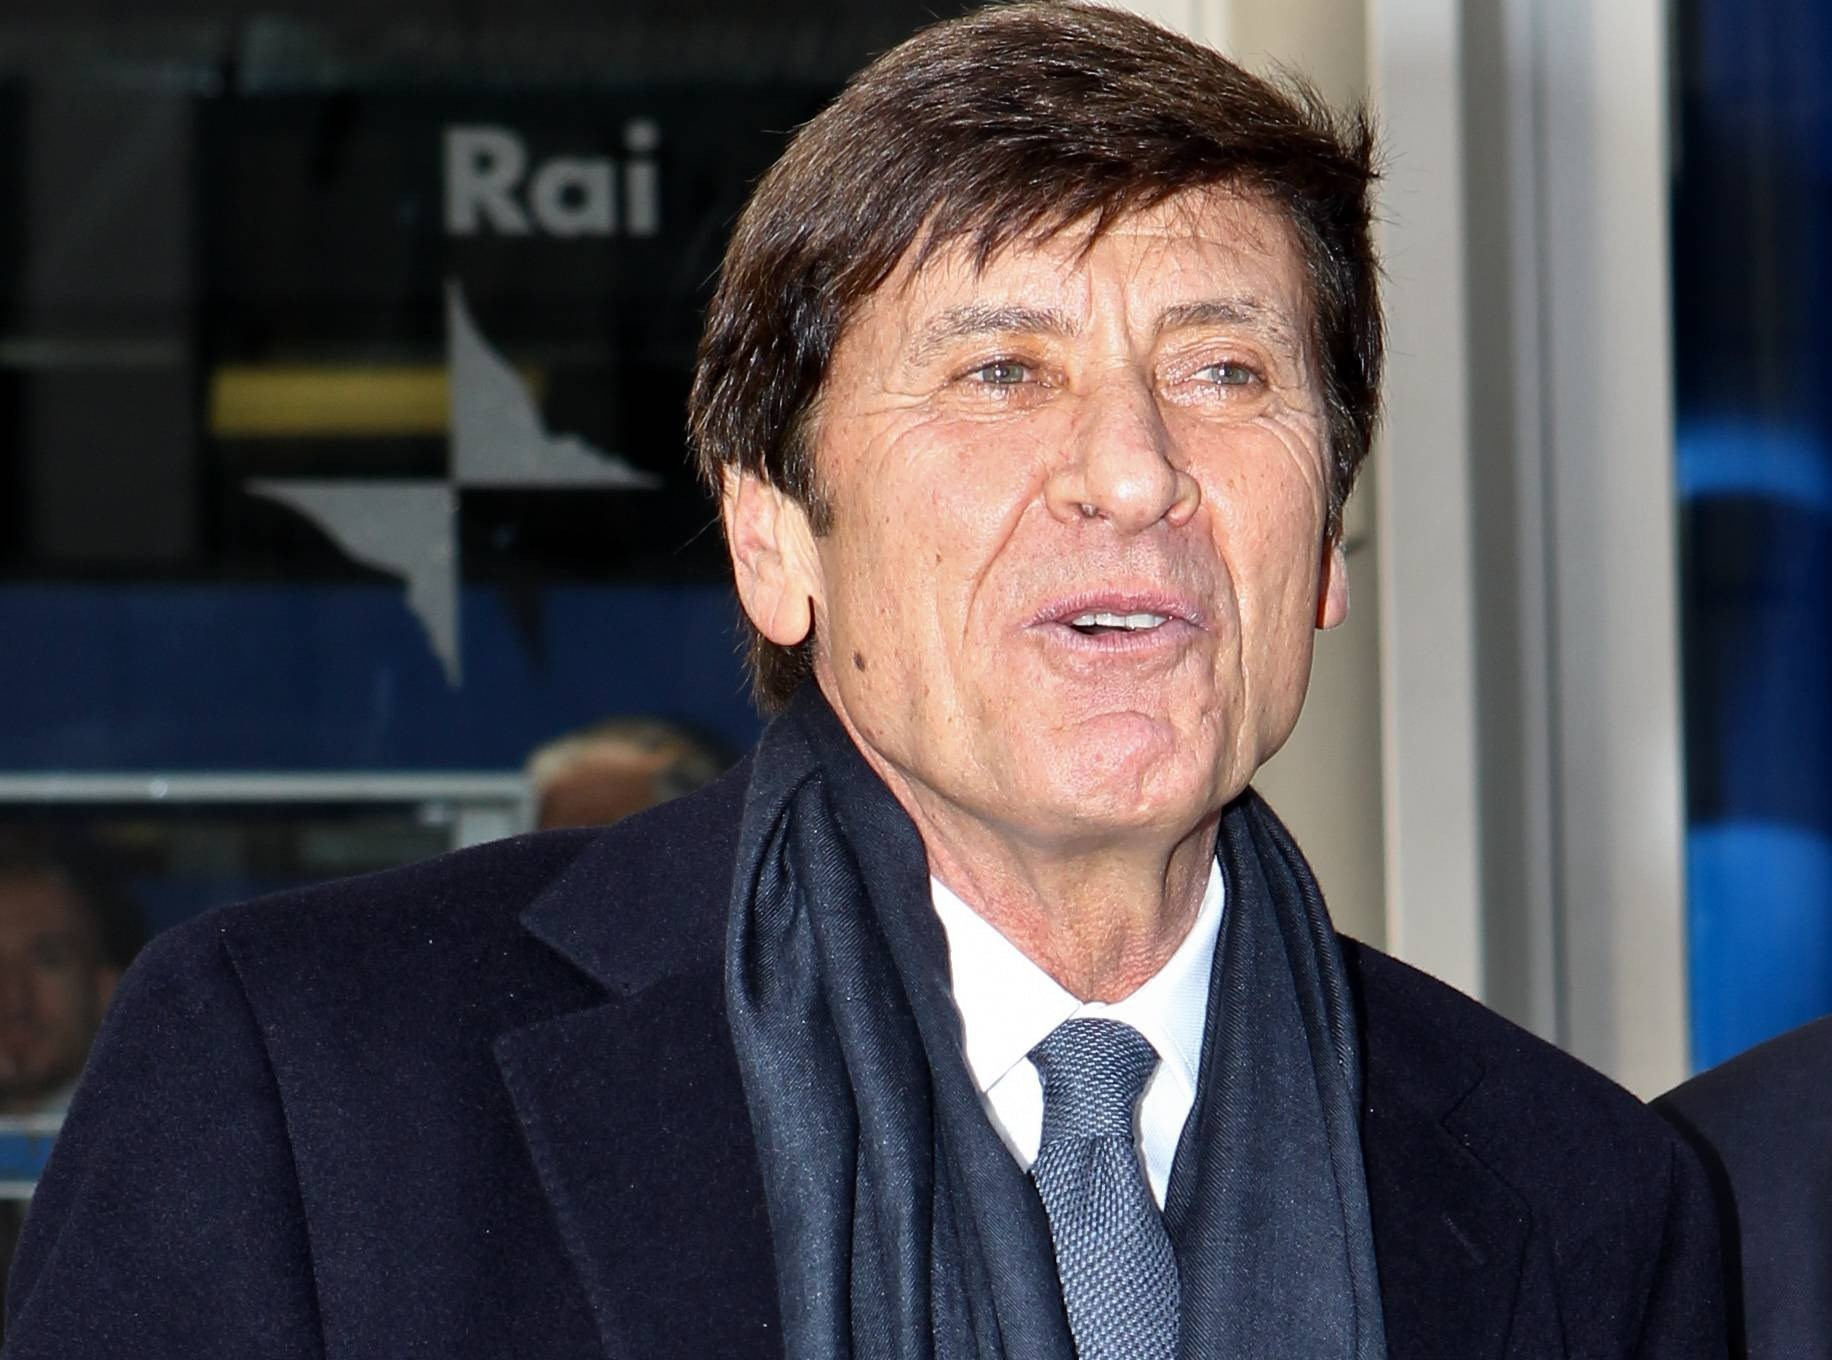 gianni morandi - photo #8